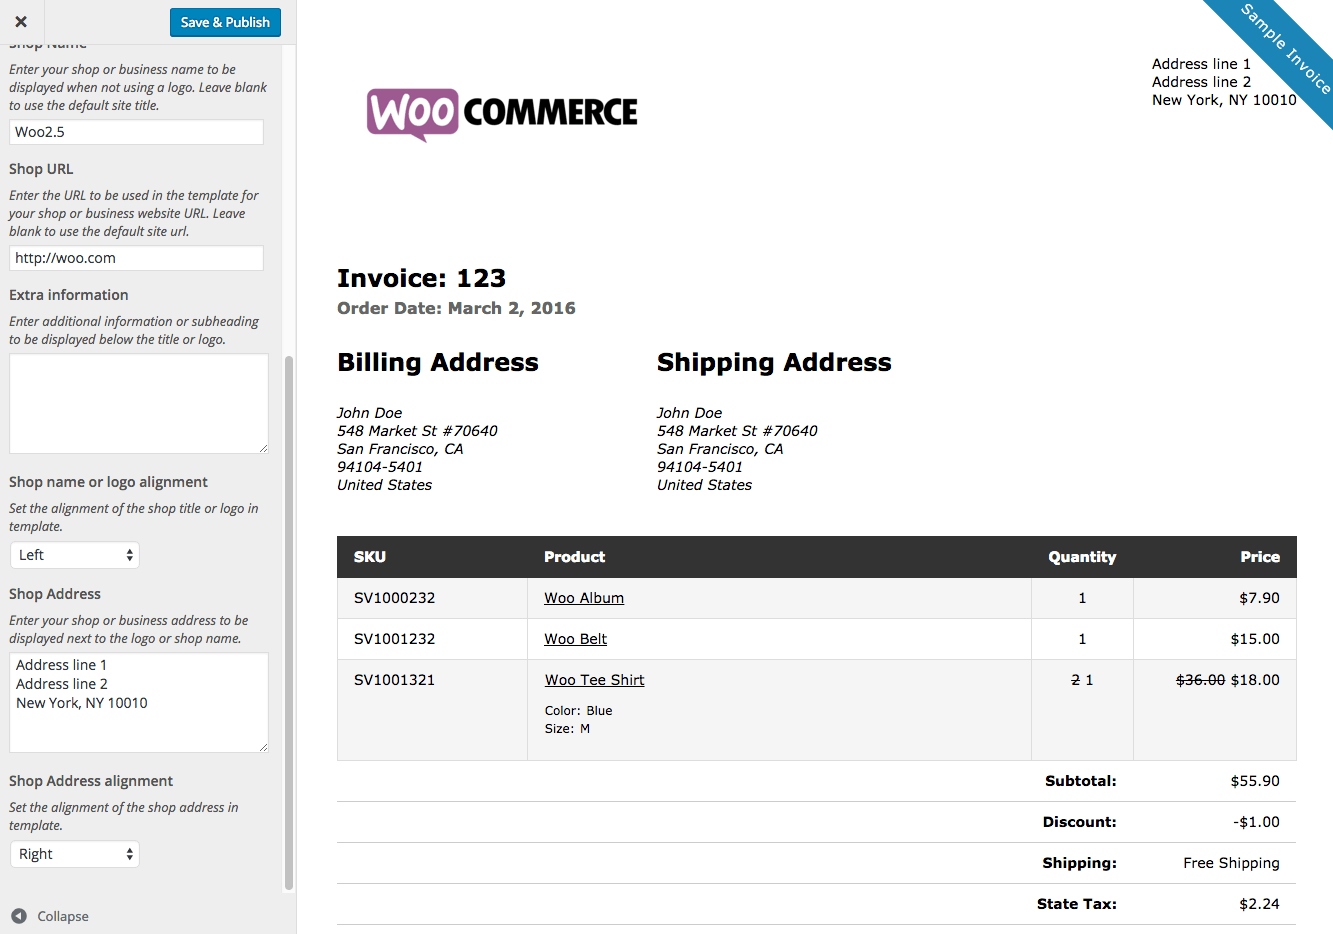 Coachoutletonlineplusus  Stunning Print Invoices Amp Packing Lists  Woocommerce With Foxy Woocommerce Print Invoices  Packing Lists Customizer With Astounding Billing Vs Invoicing Also Sample Invoice Templates In Addition Invoice Factoring Quotes And Ford Dealer Invoice As Well As Honda Crv Invoice Additionally Invoice Price Of A Bond From Woocommercecom With Coachoutletonlineplusus  Foxy Print Invoices Amp Packing Lists  Woocommerce With Astounding Woocommerce Print Invoices  Packing Lists Customizer And Stunning Billing Vs Invoicing Also Sample Invoice Templates In Addition Invoice Factoring Quotes From Woocommercecom